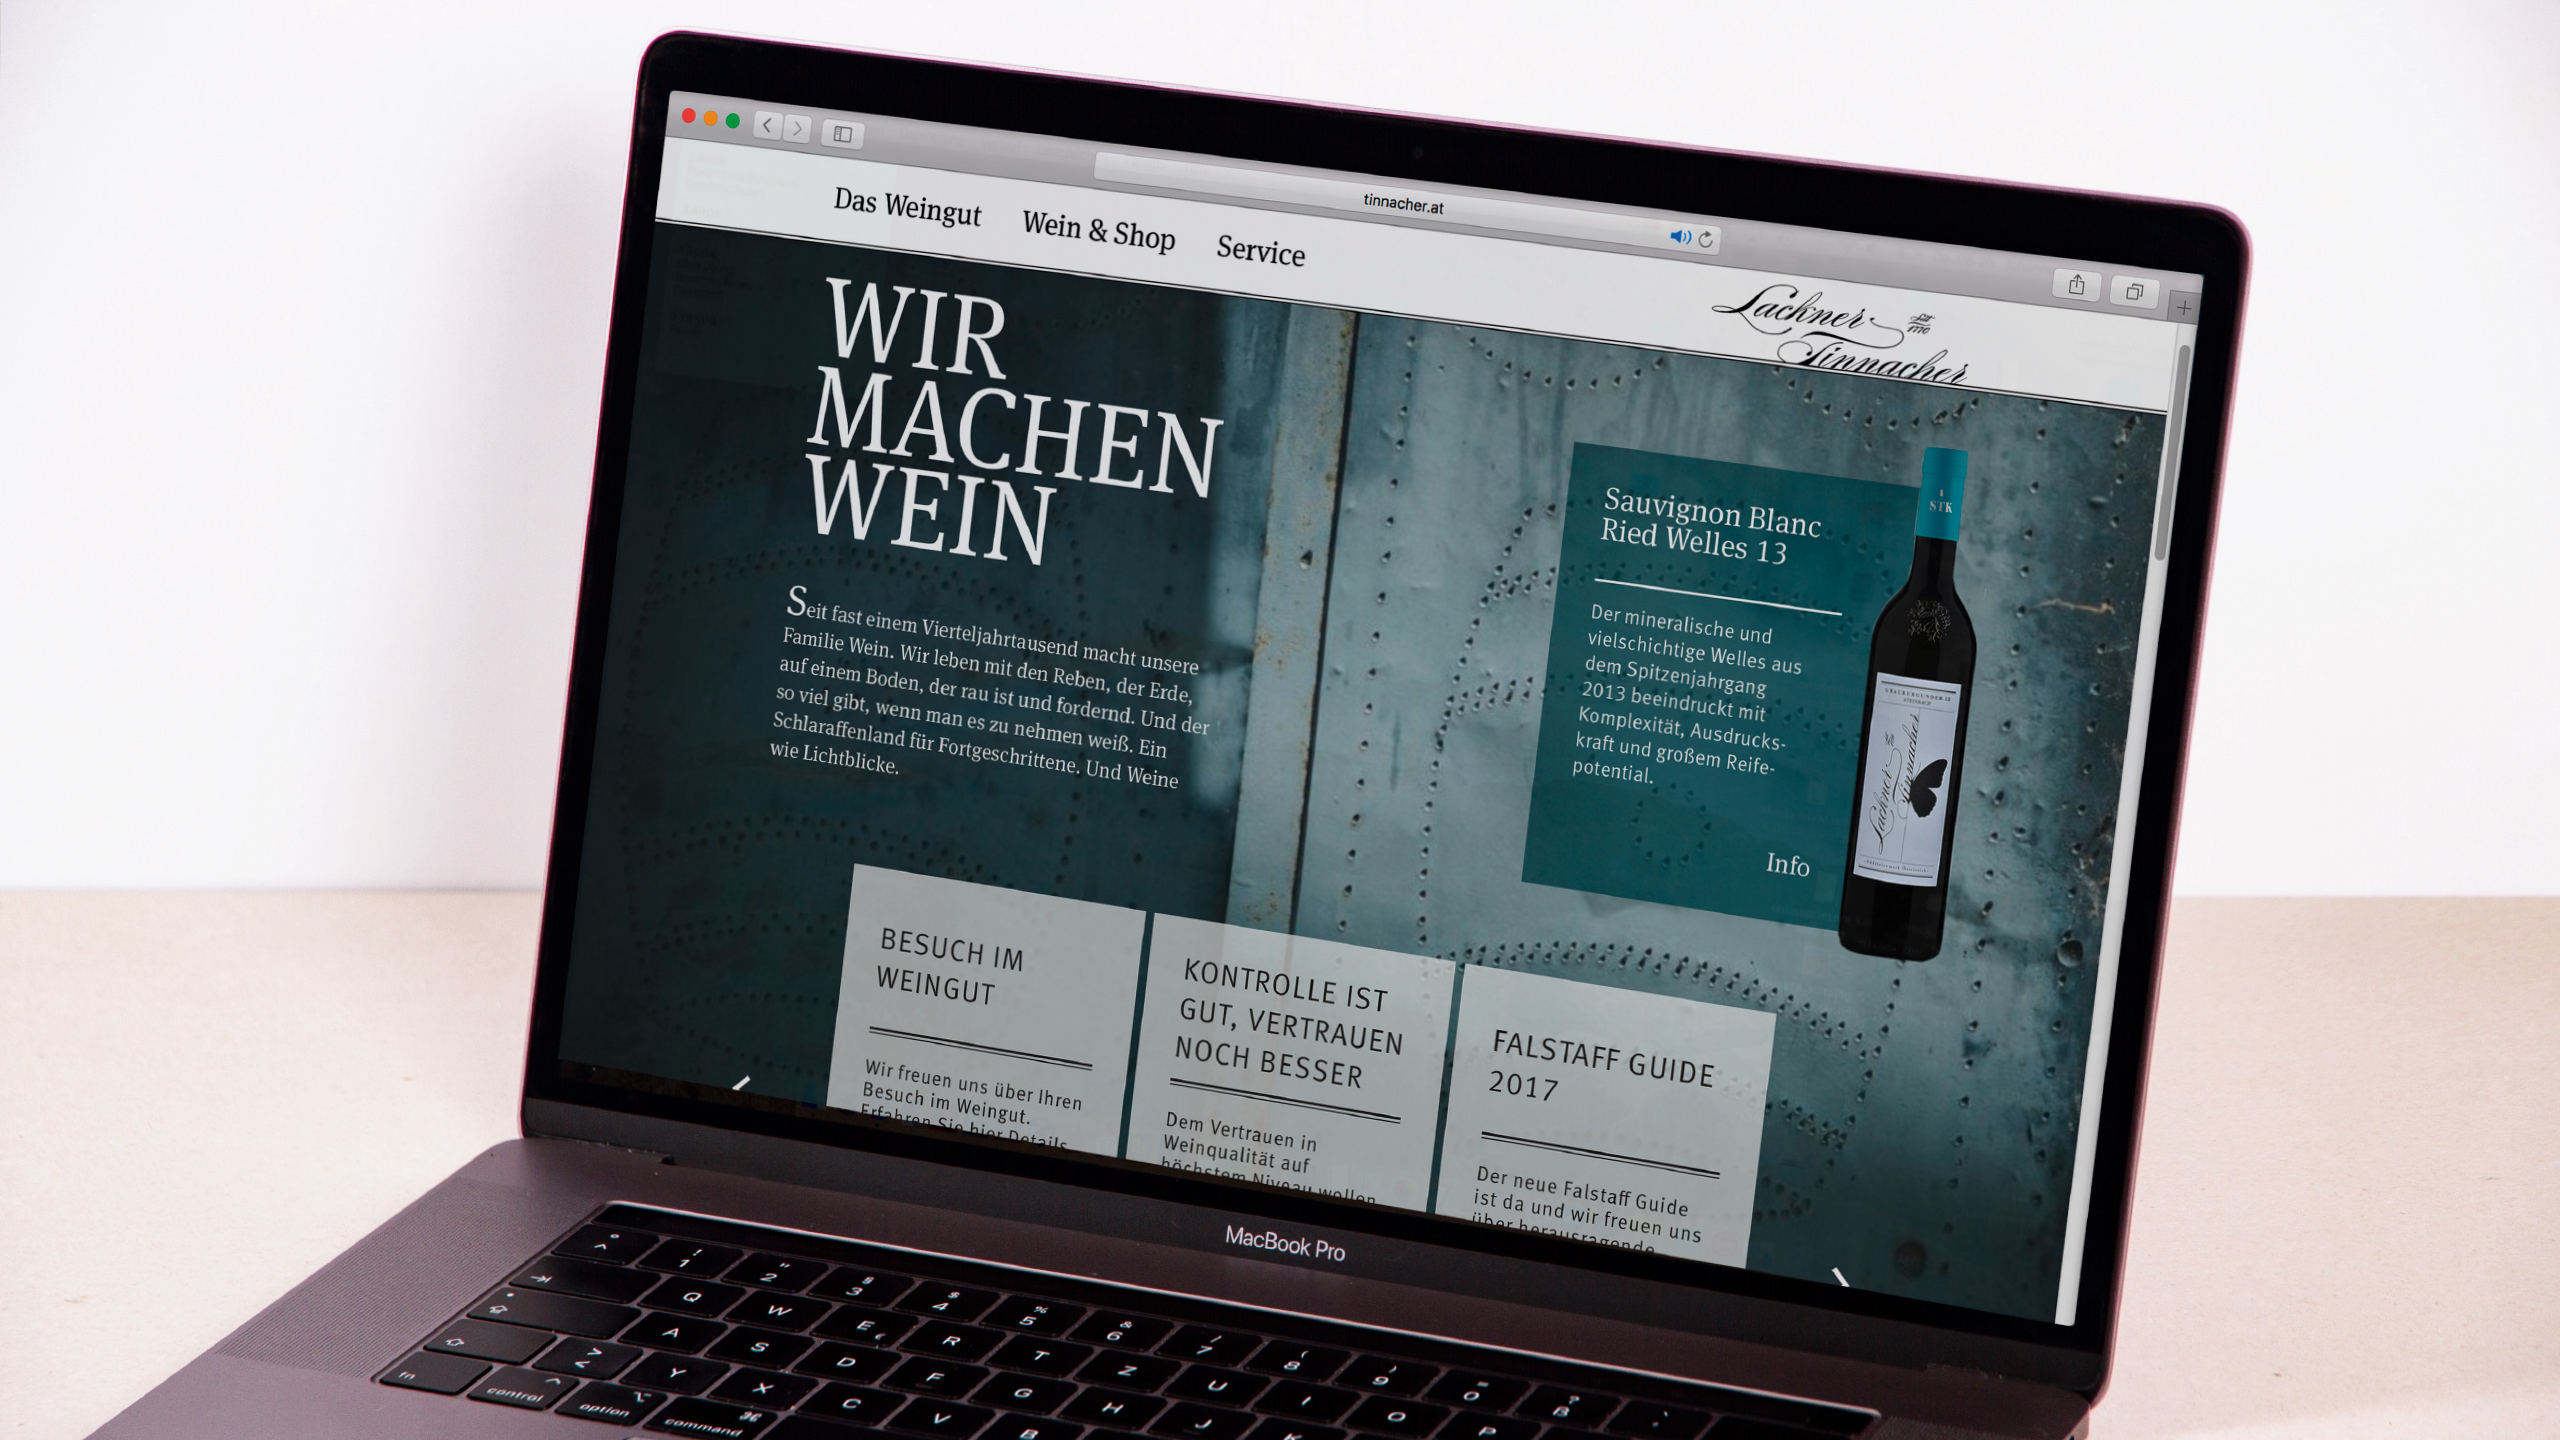 Ref Lackner Tinnacher 18 Webdesign